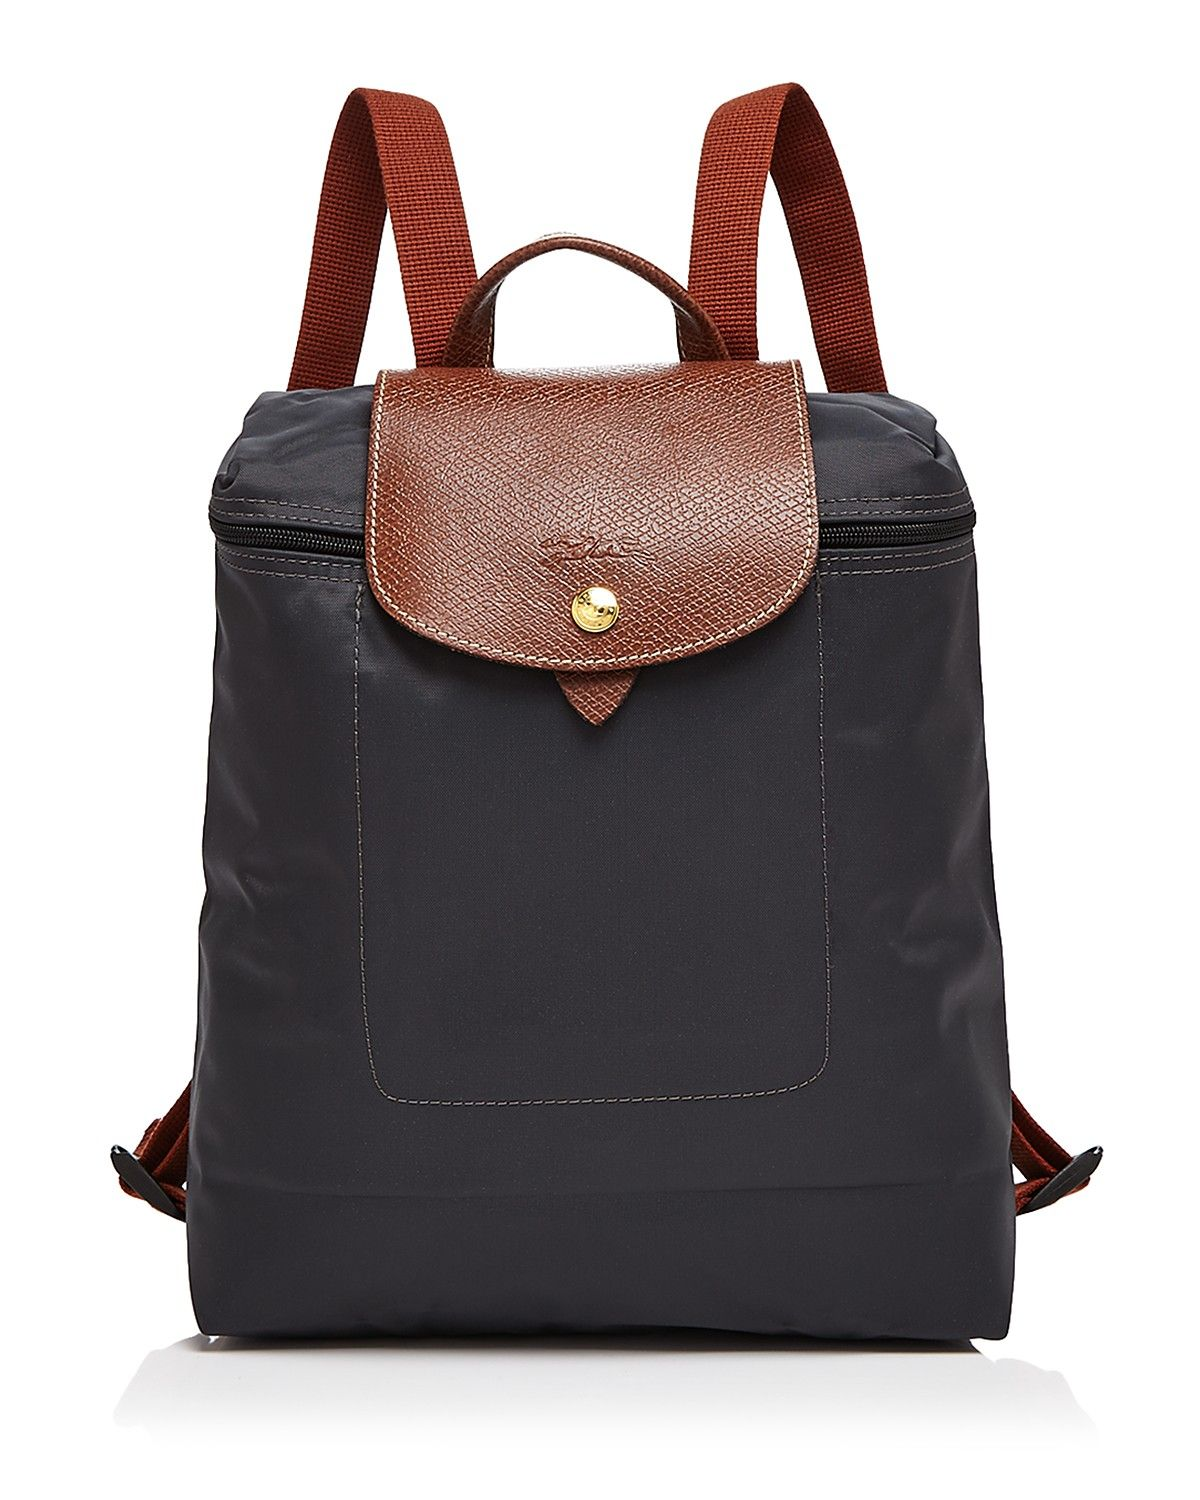 0a3a95a562e7 Longchamp Backpack - Le Pliage